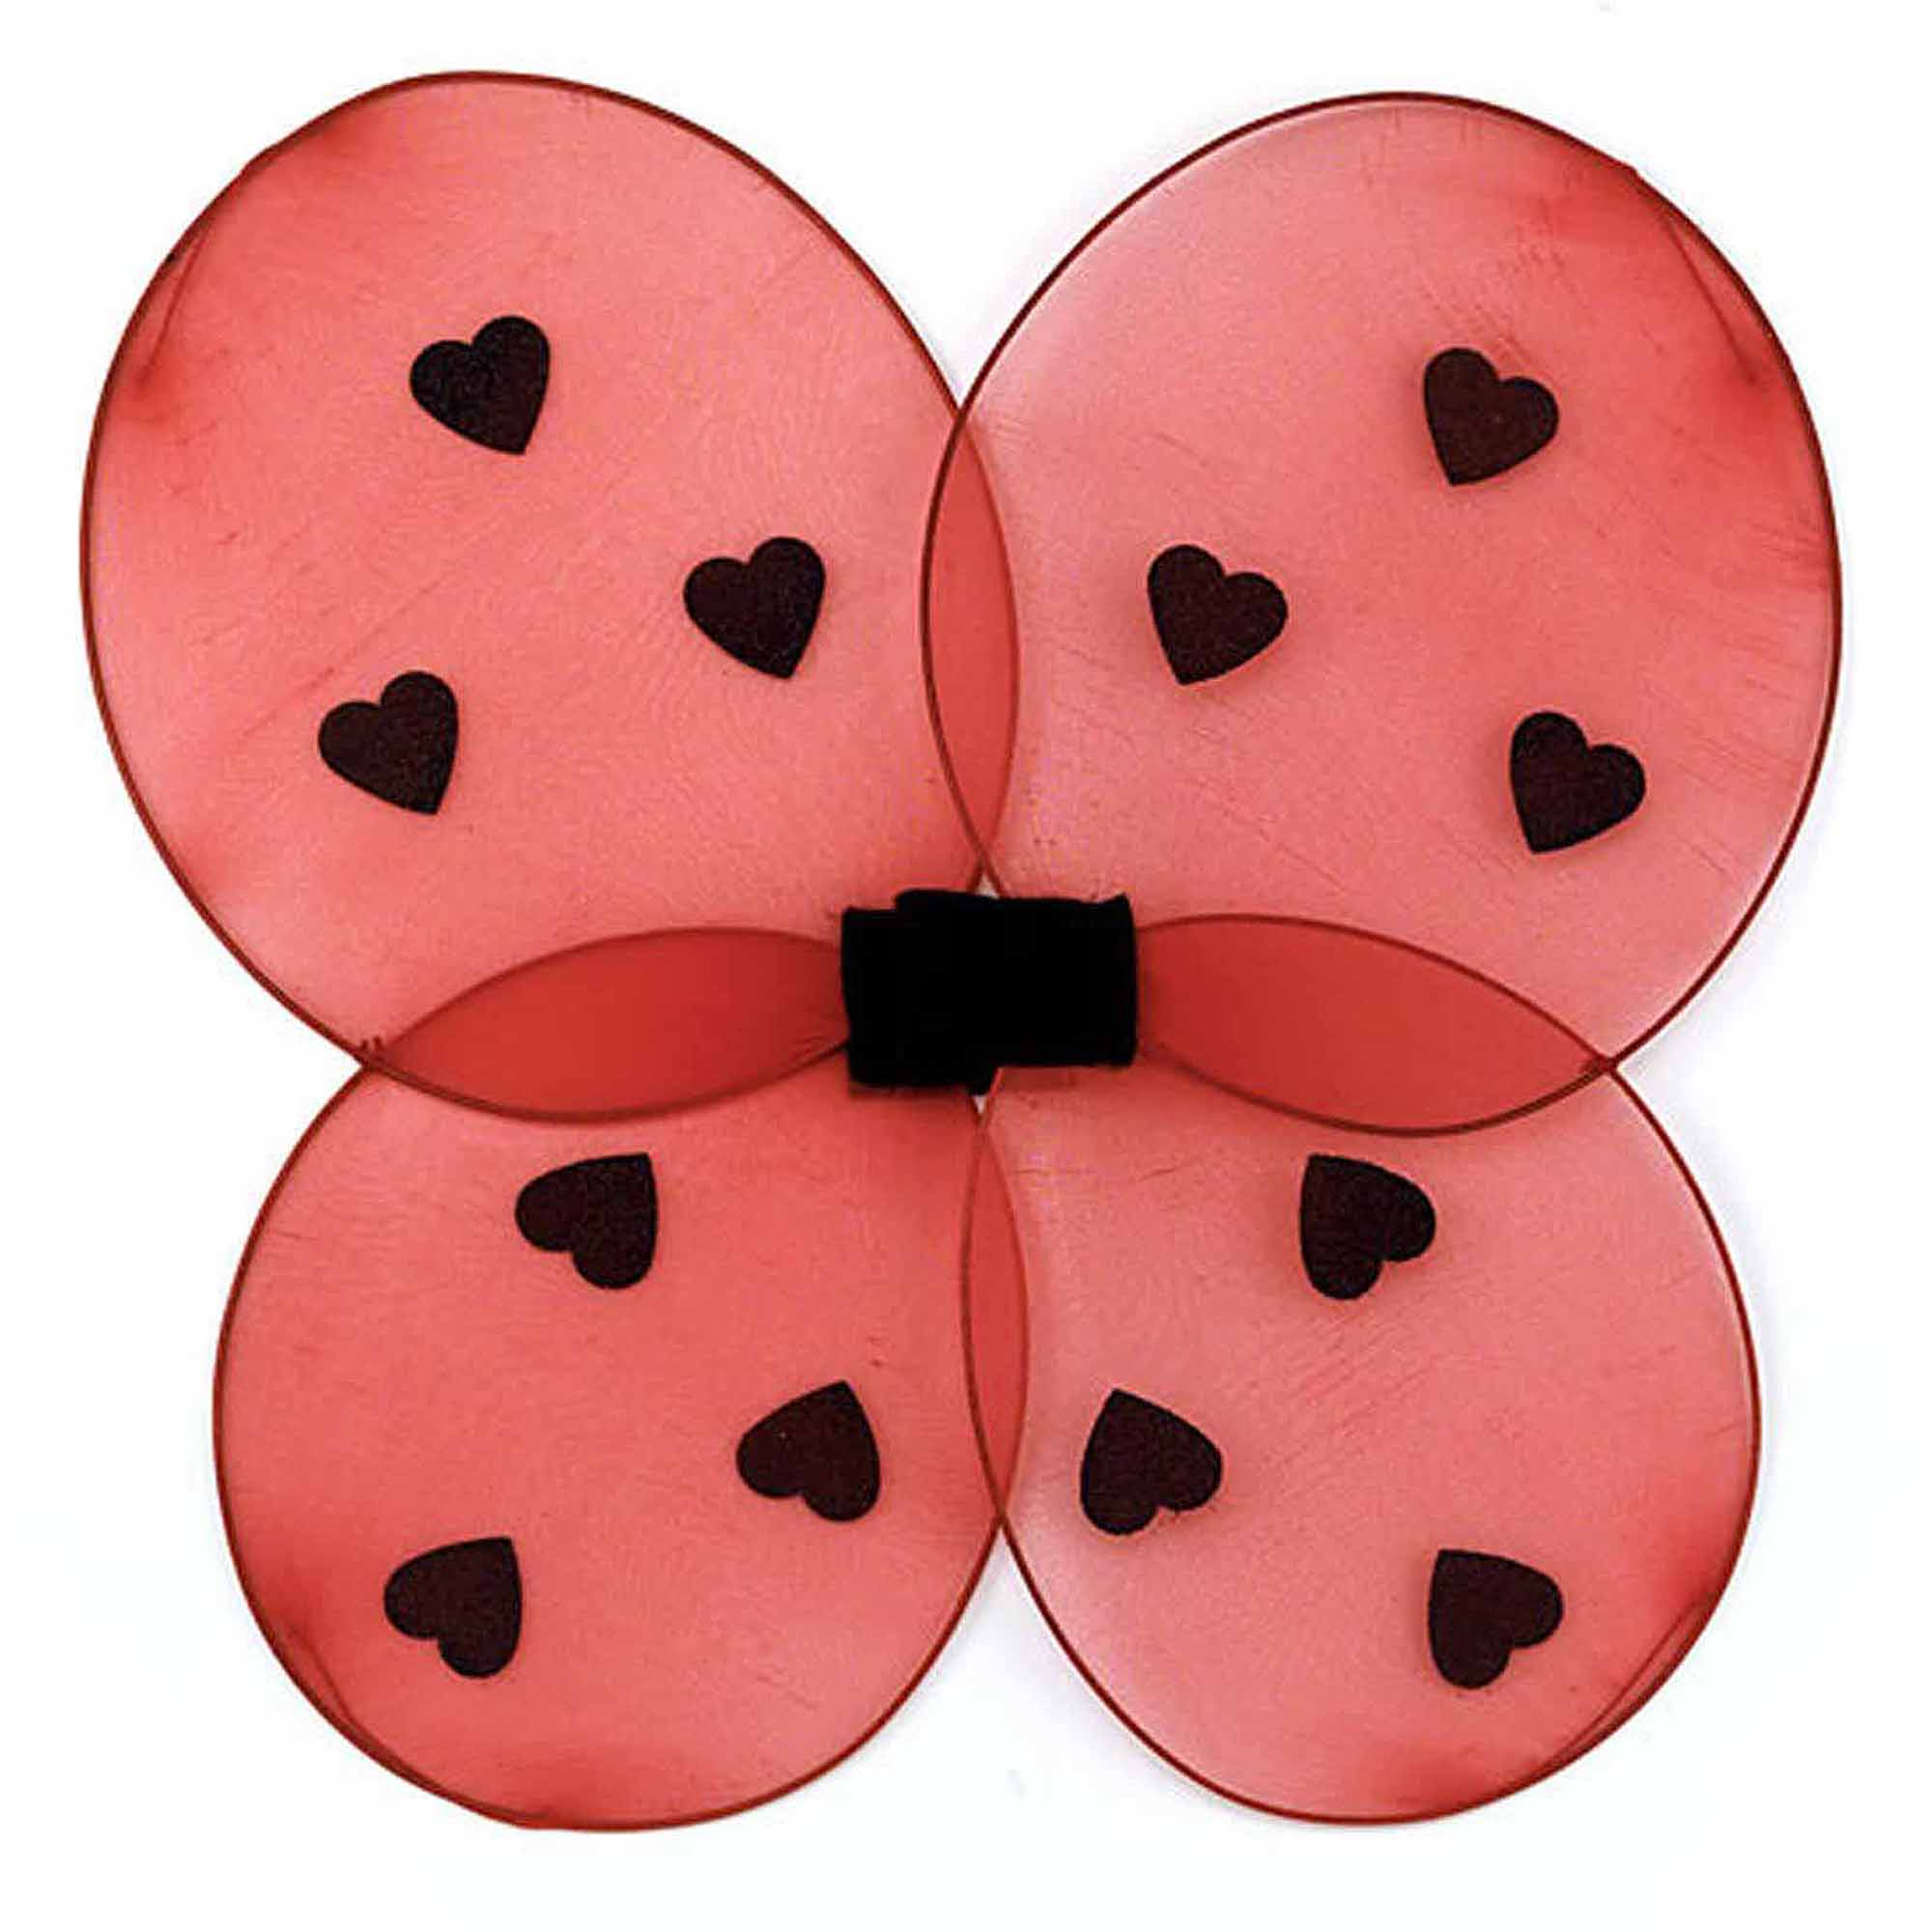 Ladybug Child Wings Halloween Costume Accessory